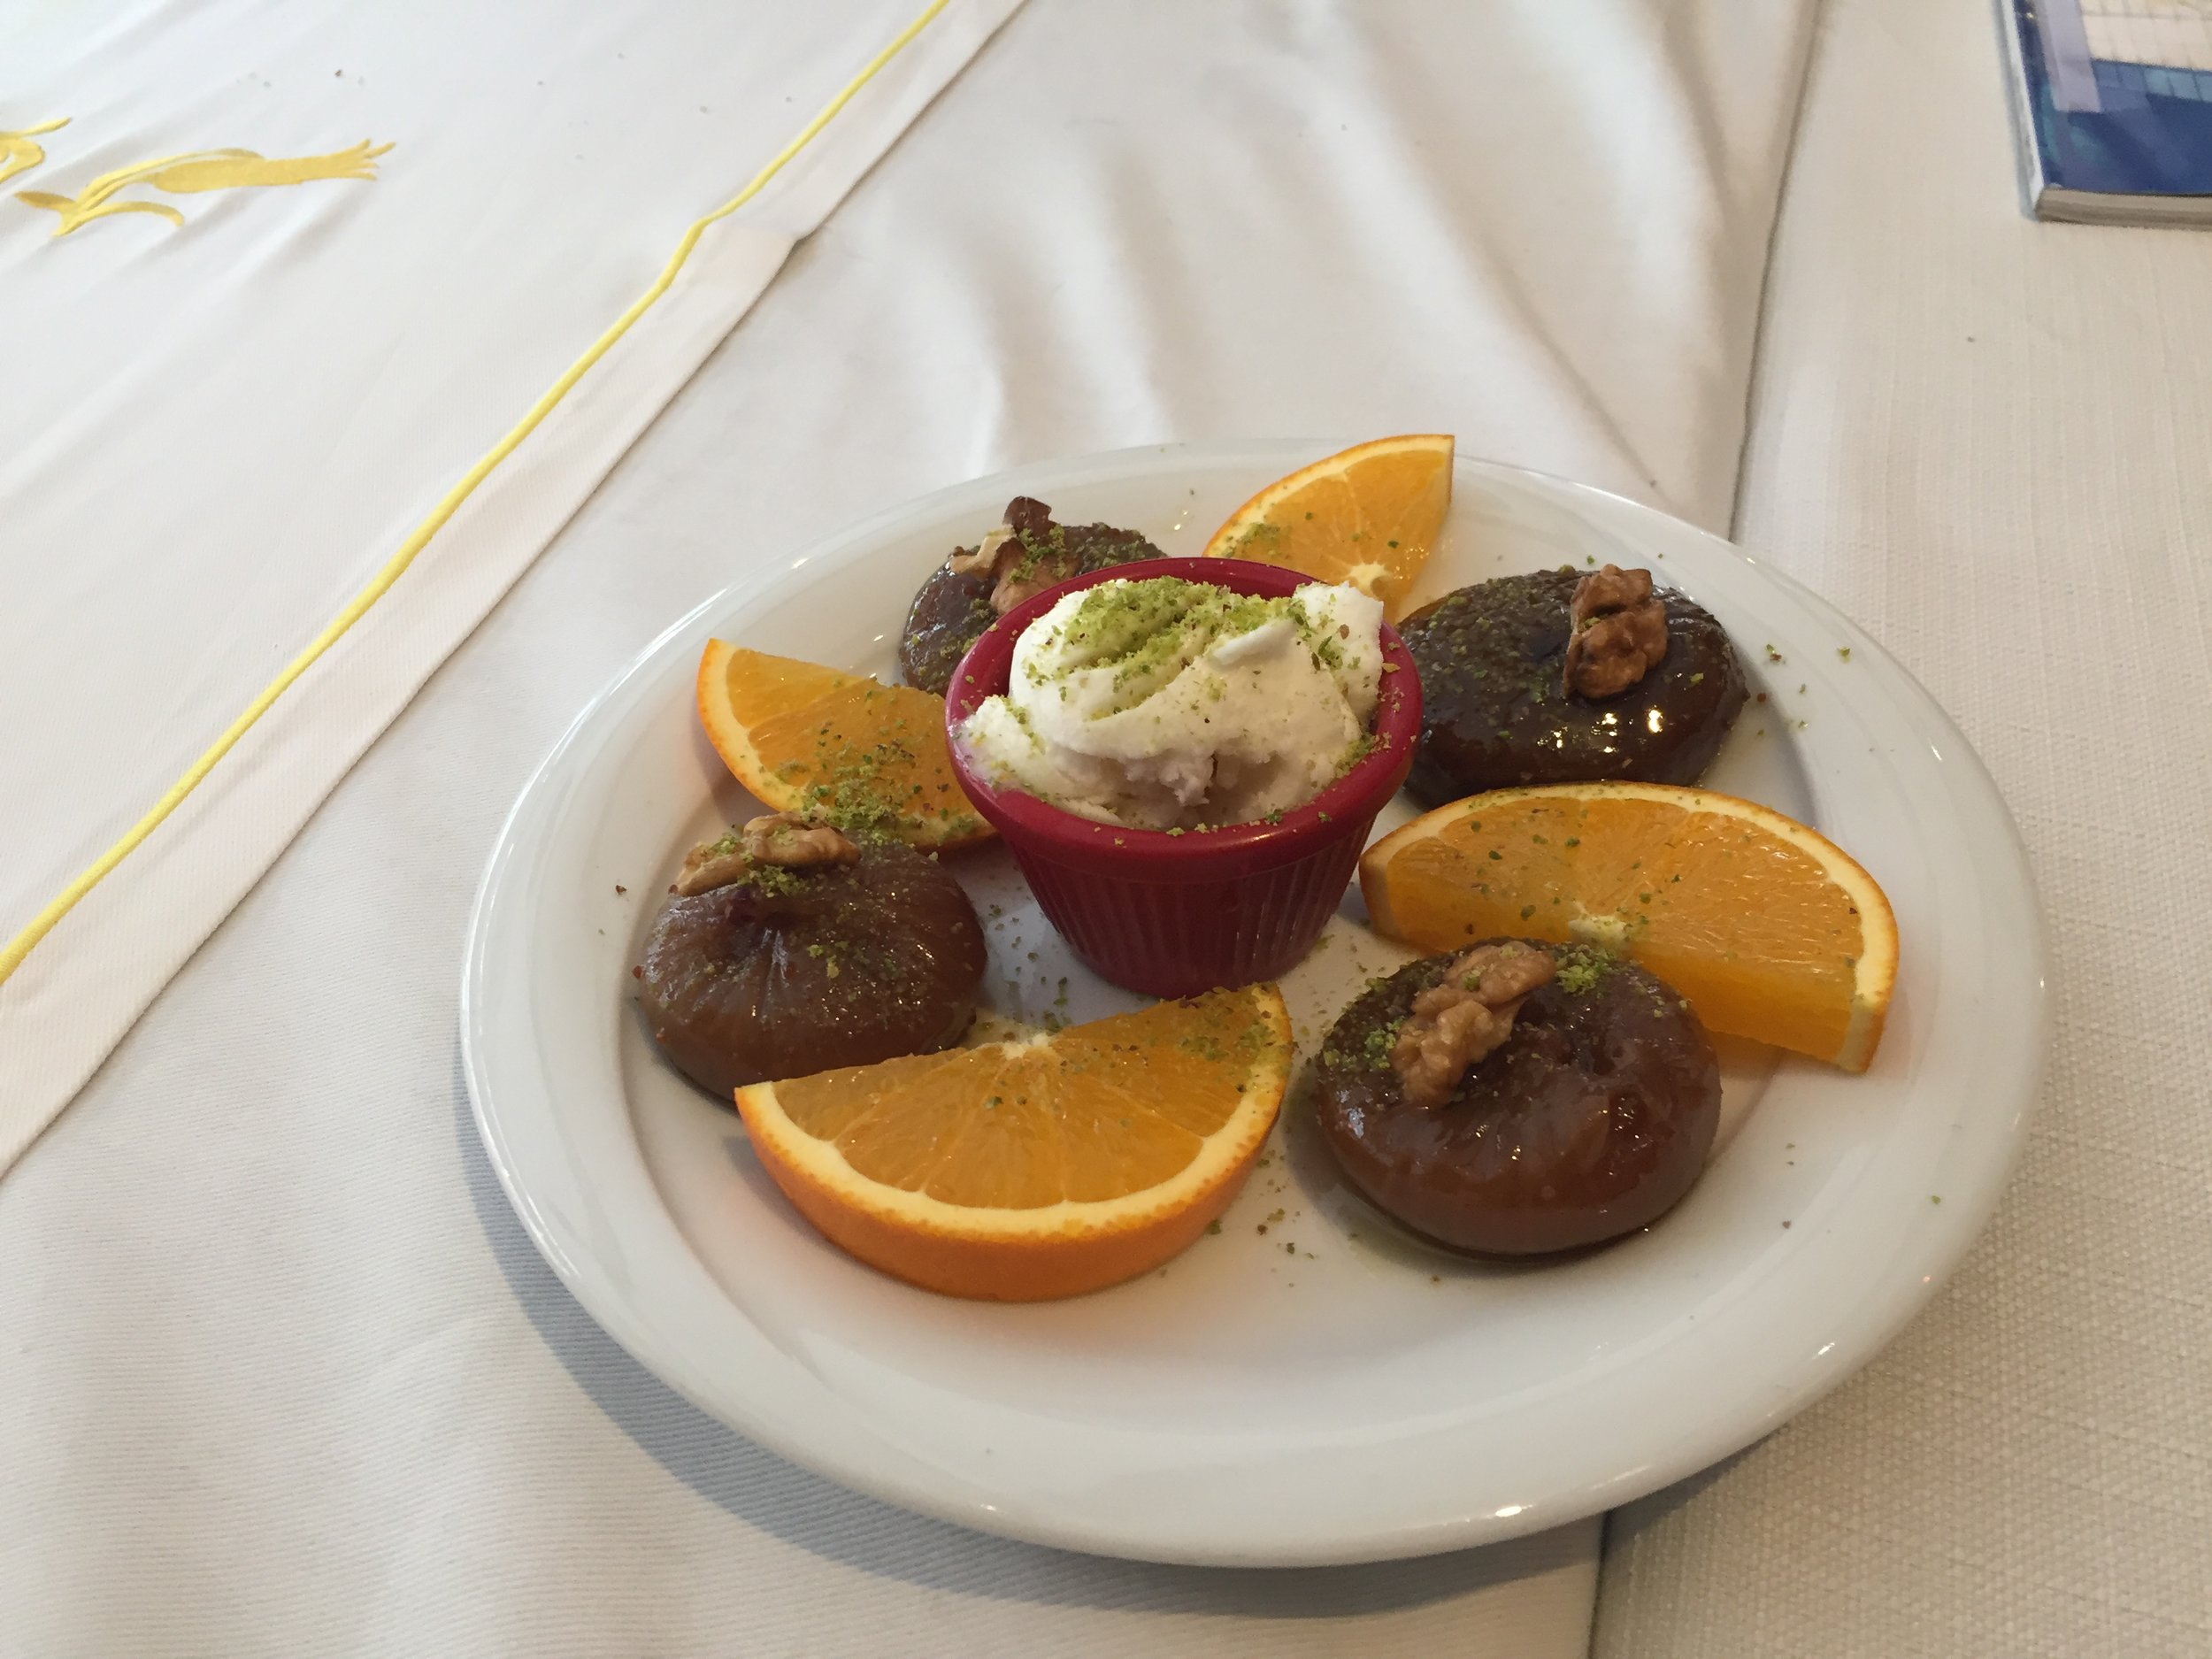 Typical Dessert of figs, ice cream and oranges